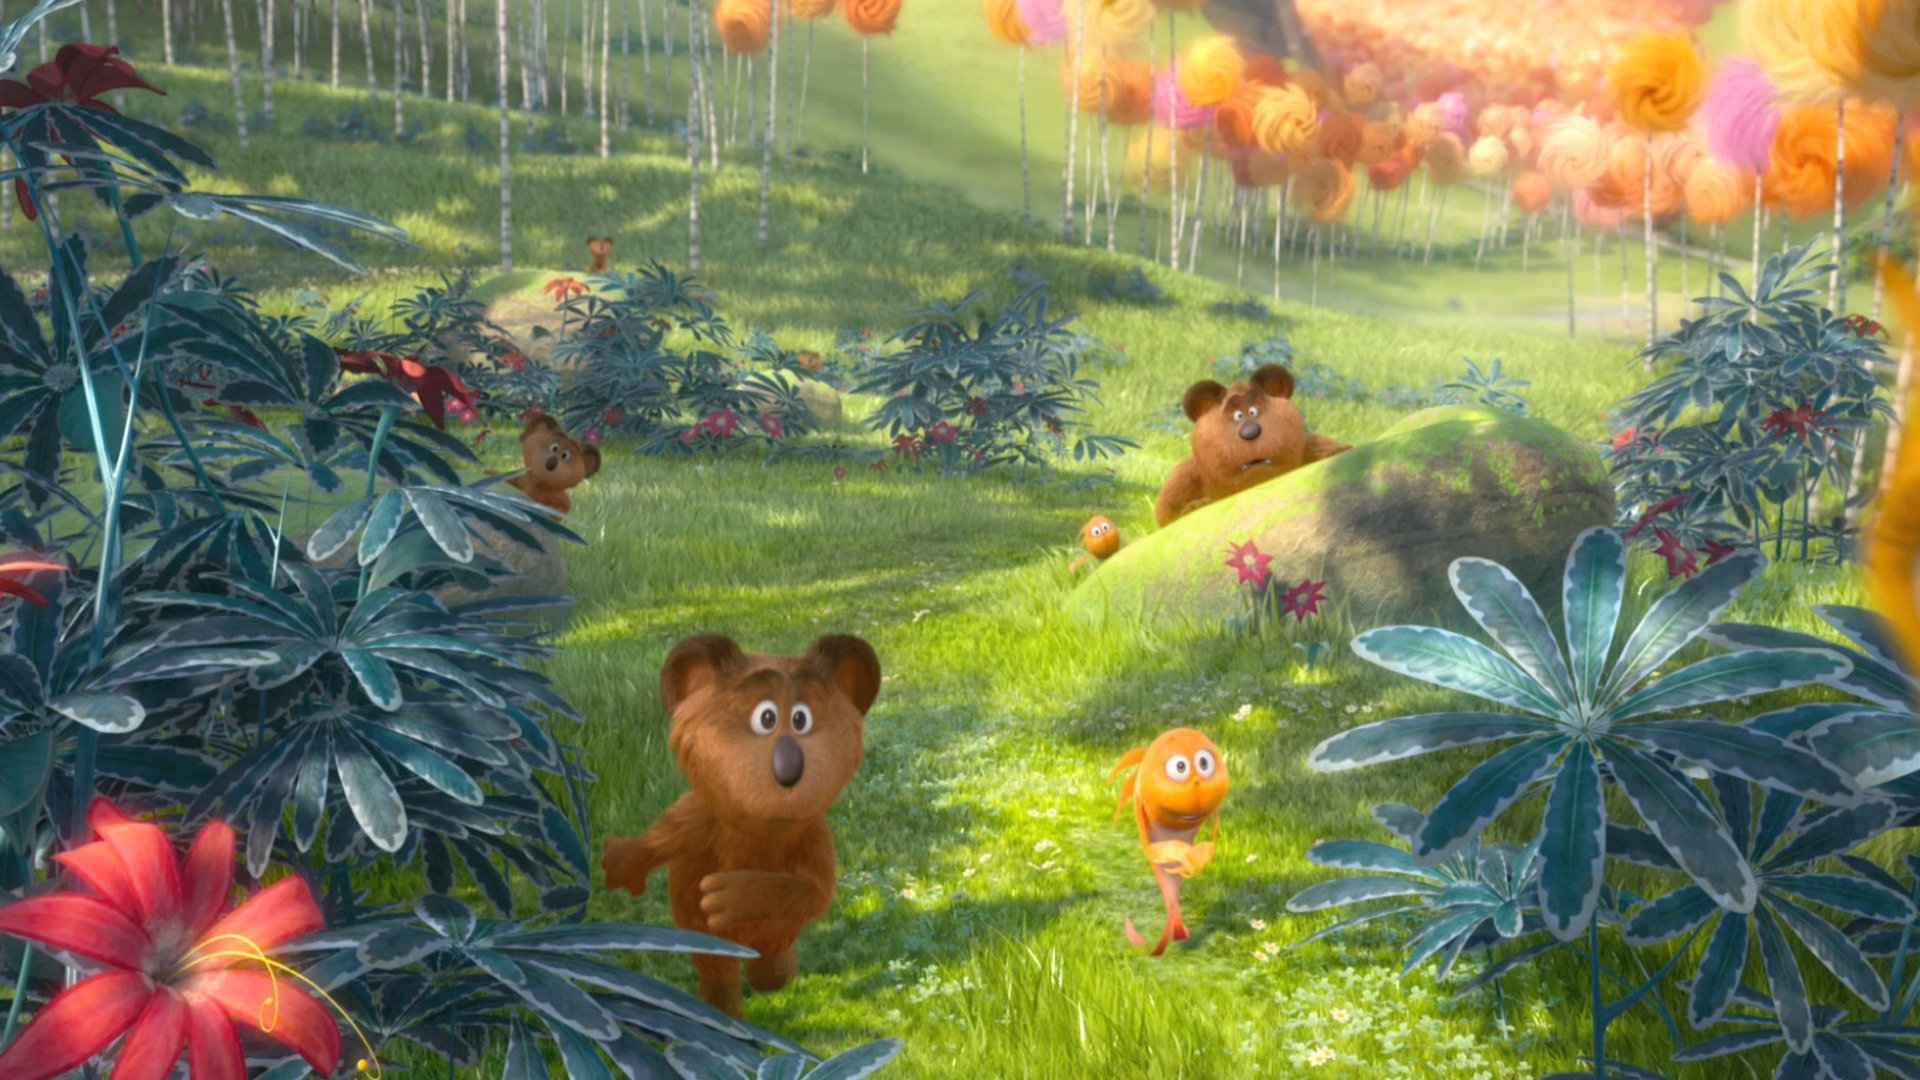 The Lorax Wallpapers 1920x1080 Full Hd 1080p Desktop Backgrounds